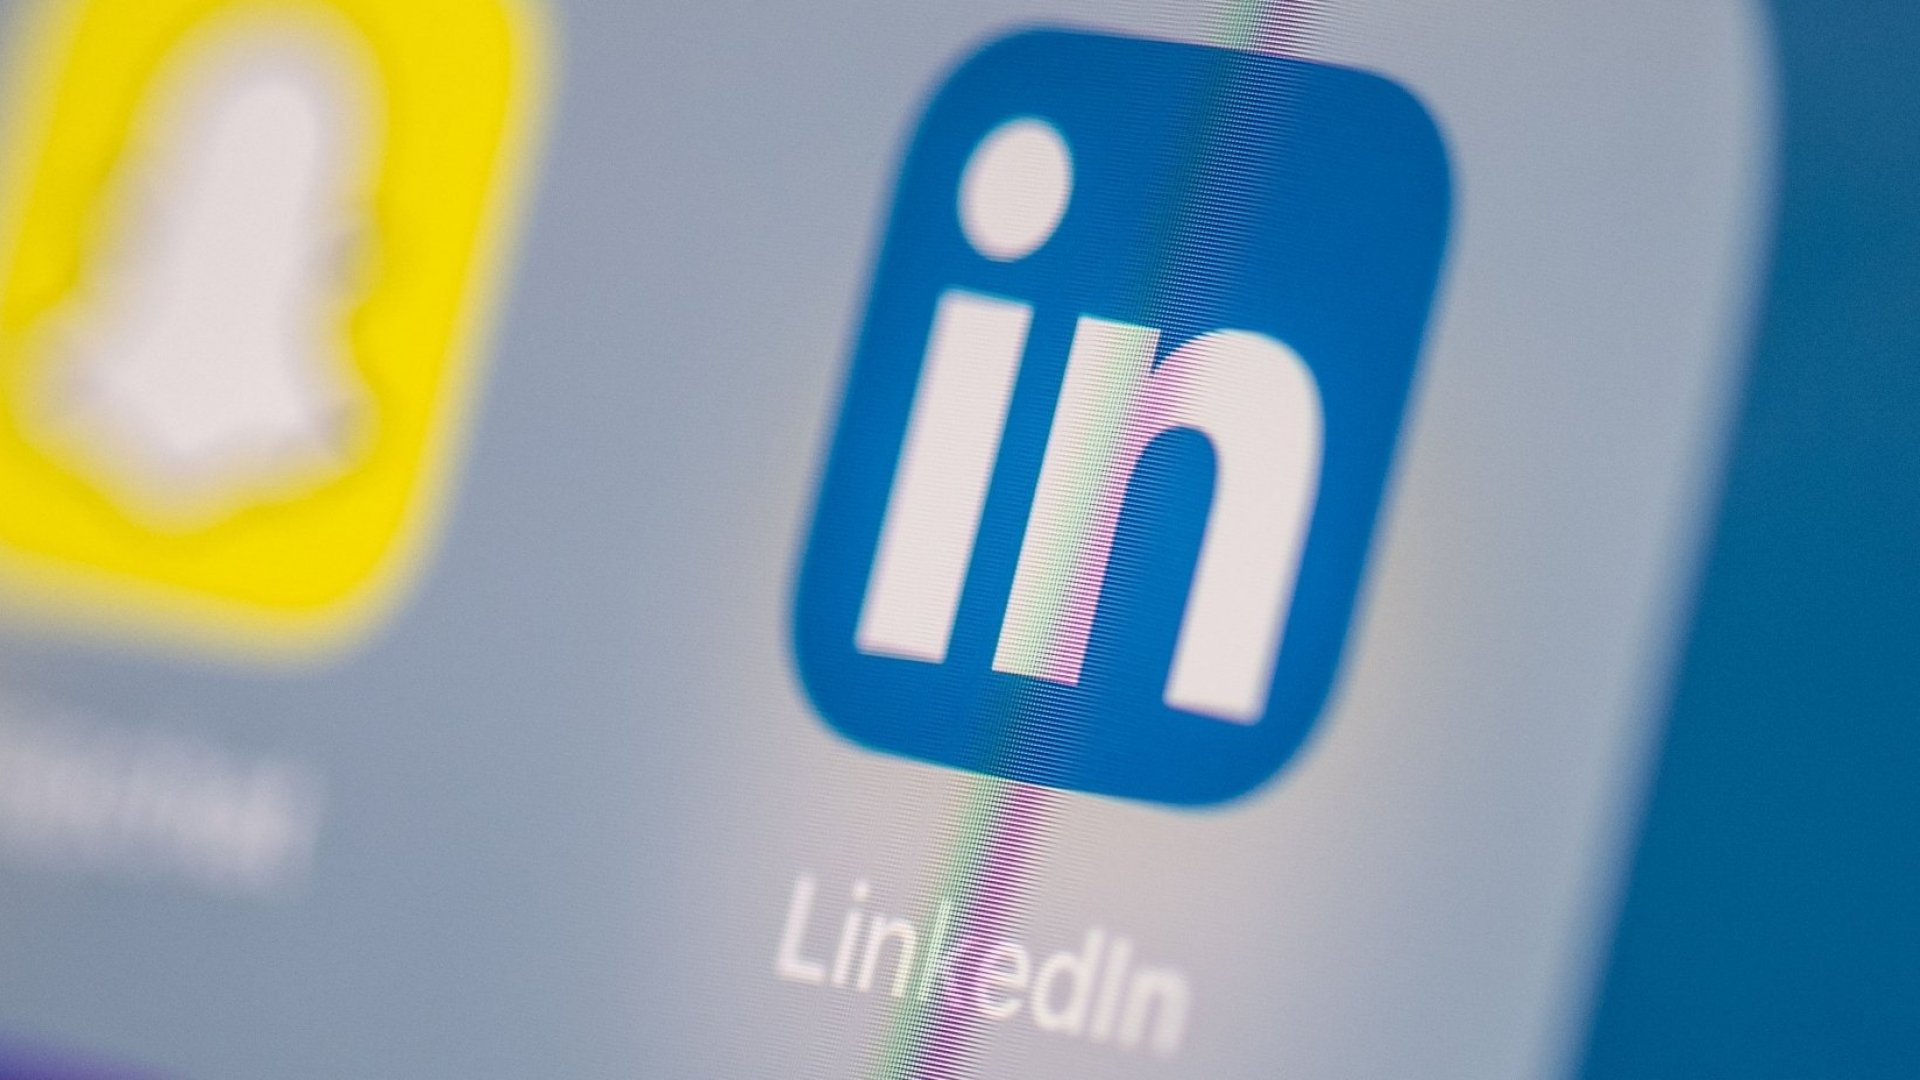 How to Update Your LinkedIn Profile When You Want to Start a Business